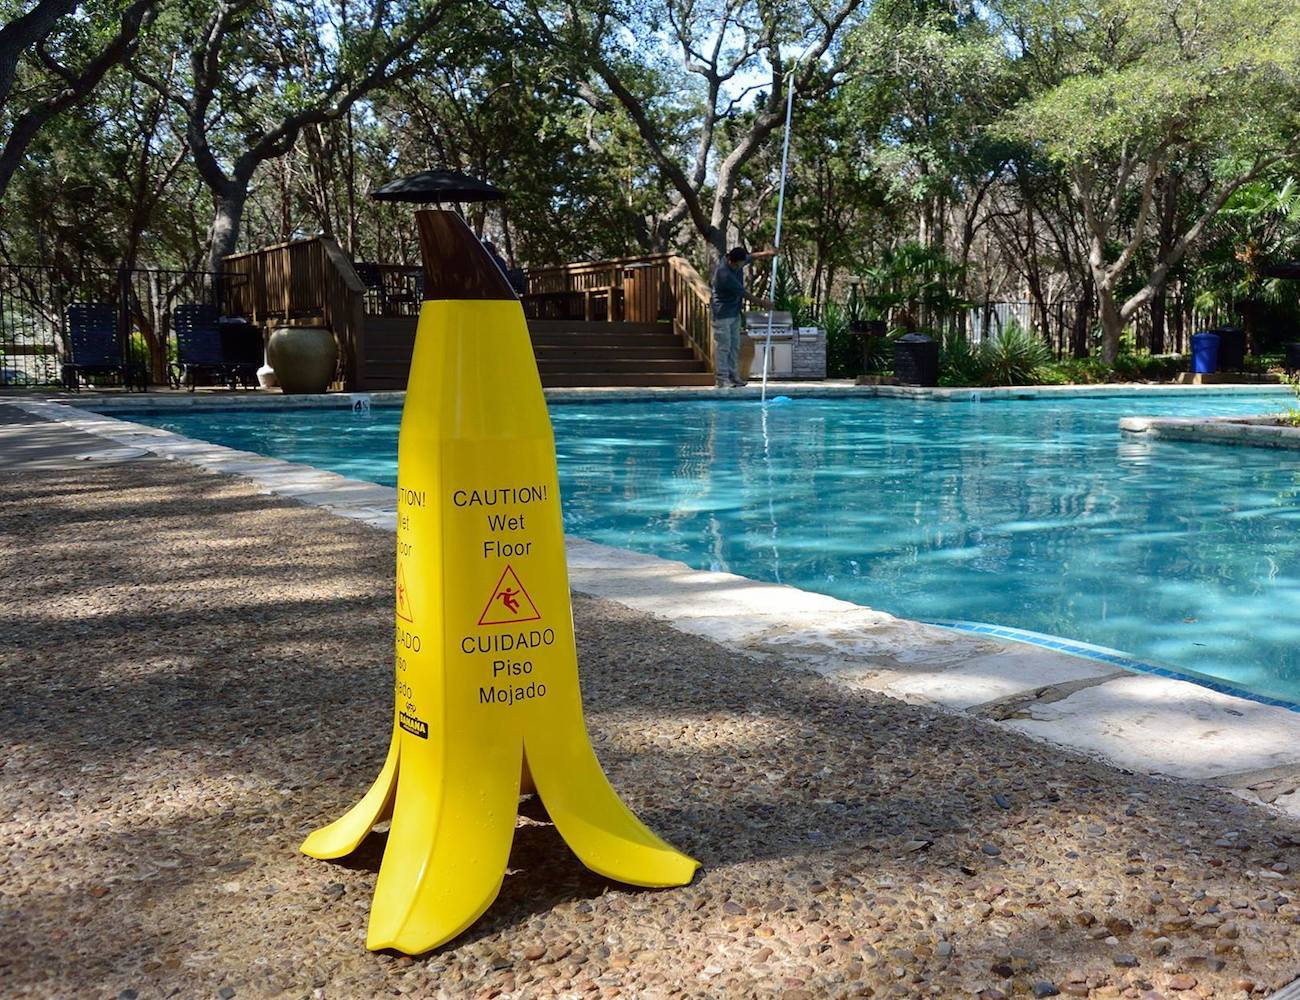 Caution! Wet Floor Banana Cone Set